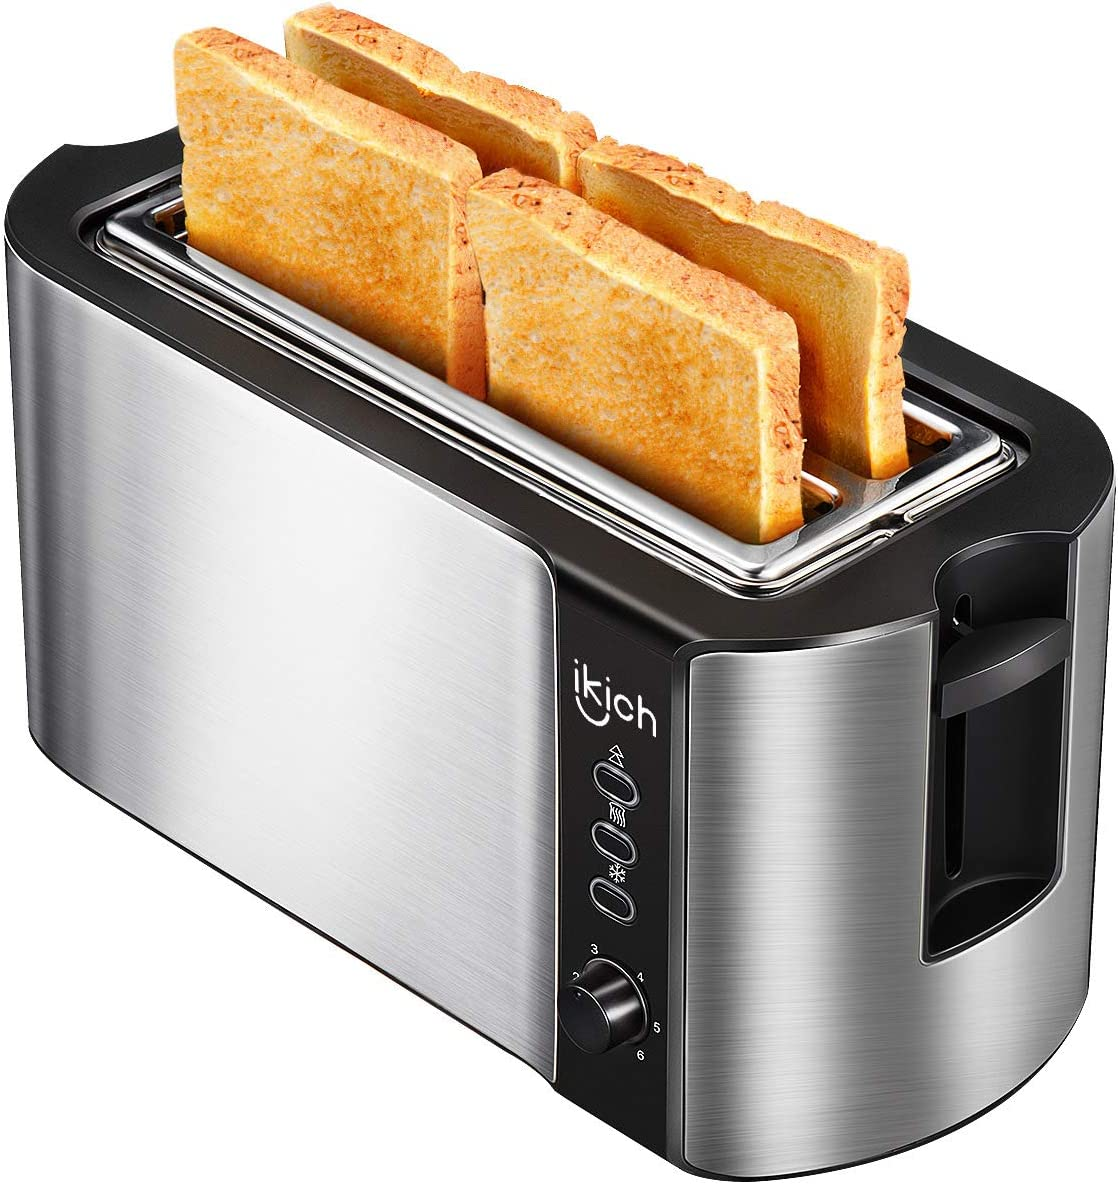 IKICH 4 Slice Long Slot Toaster Best Rated Prime, Stainless Steel Bread Toasters Warming Rack, 6 Bread Shade Settings, Defrost Reheat Cancel Function, Extra Wide Slots, Removable Crumb Tray, 1300W